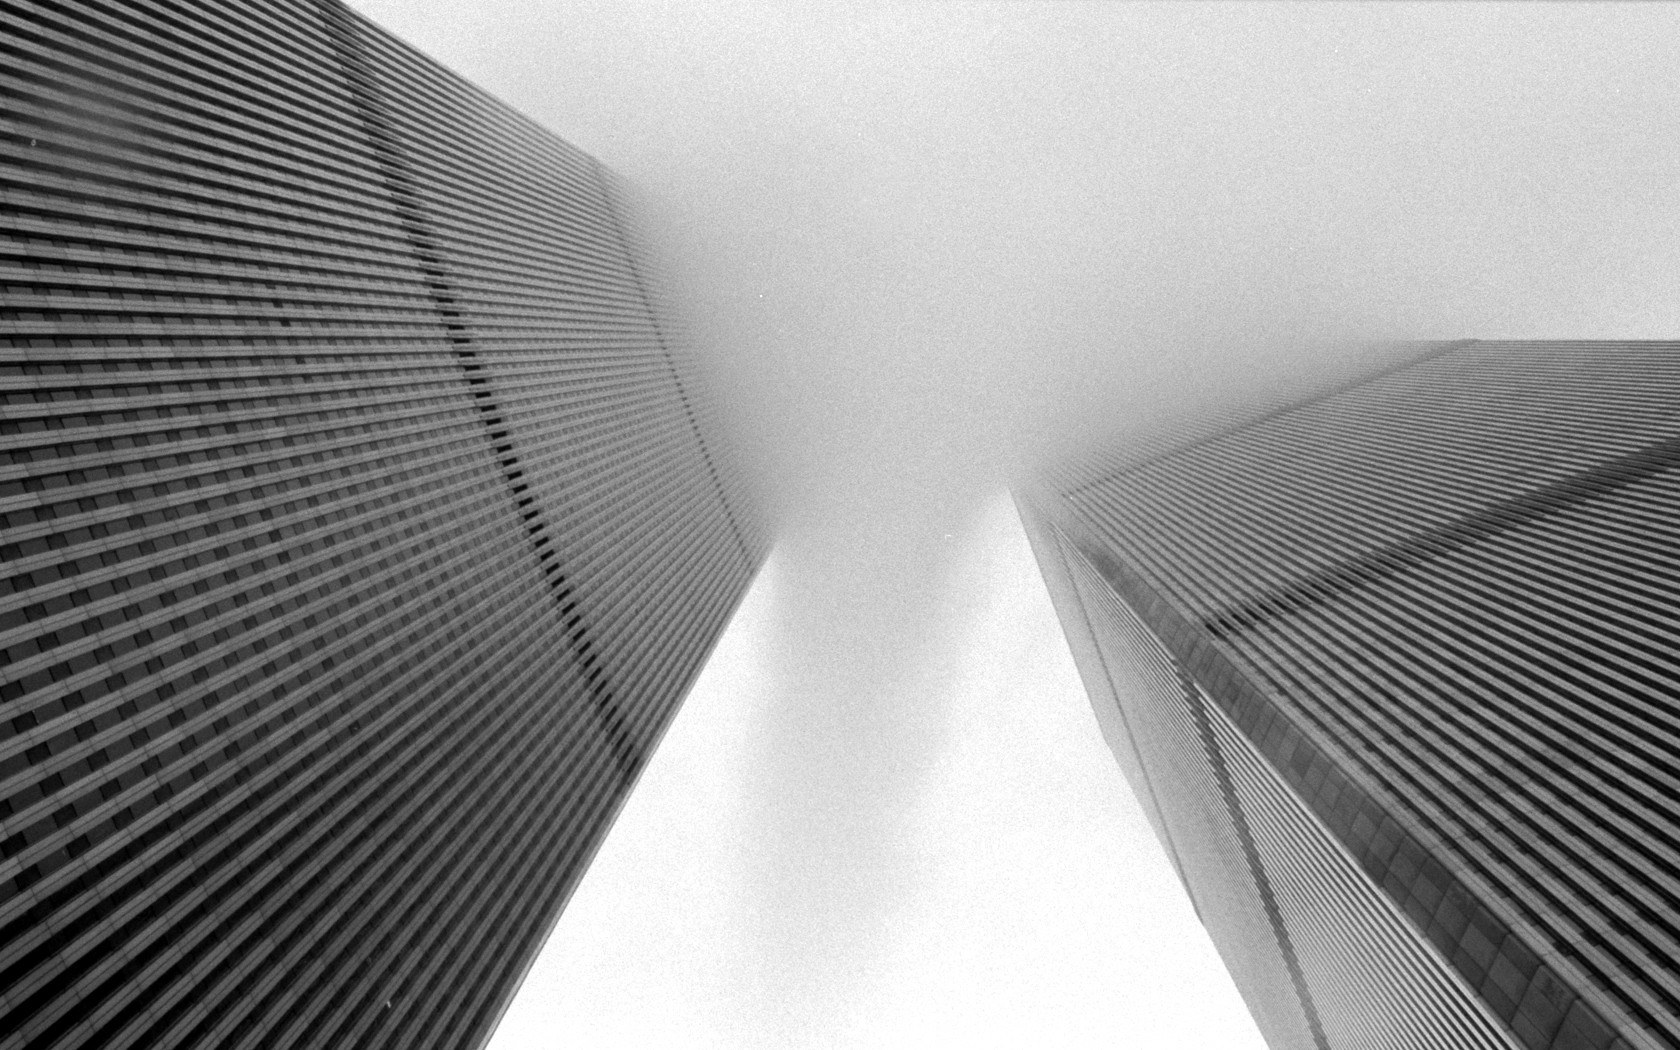 A view of the Twin Towers looking up between the two buildings, partially obscured by clouds